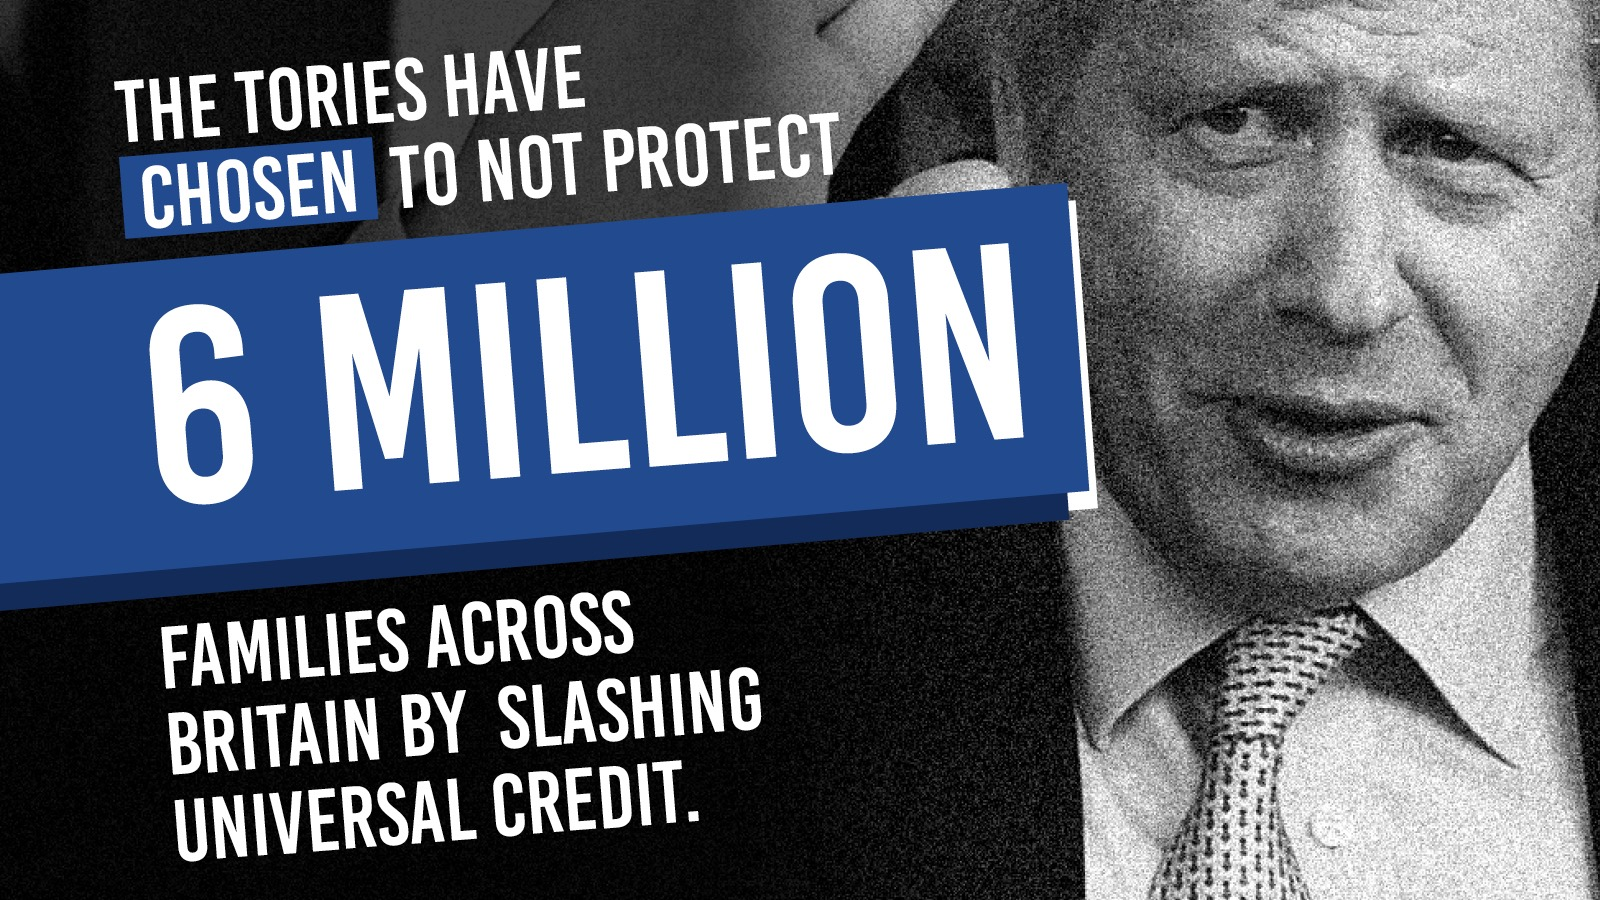 Cancel the cut in Universal Credit